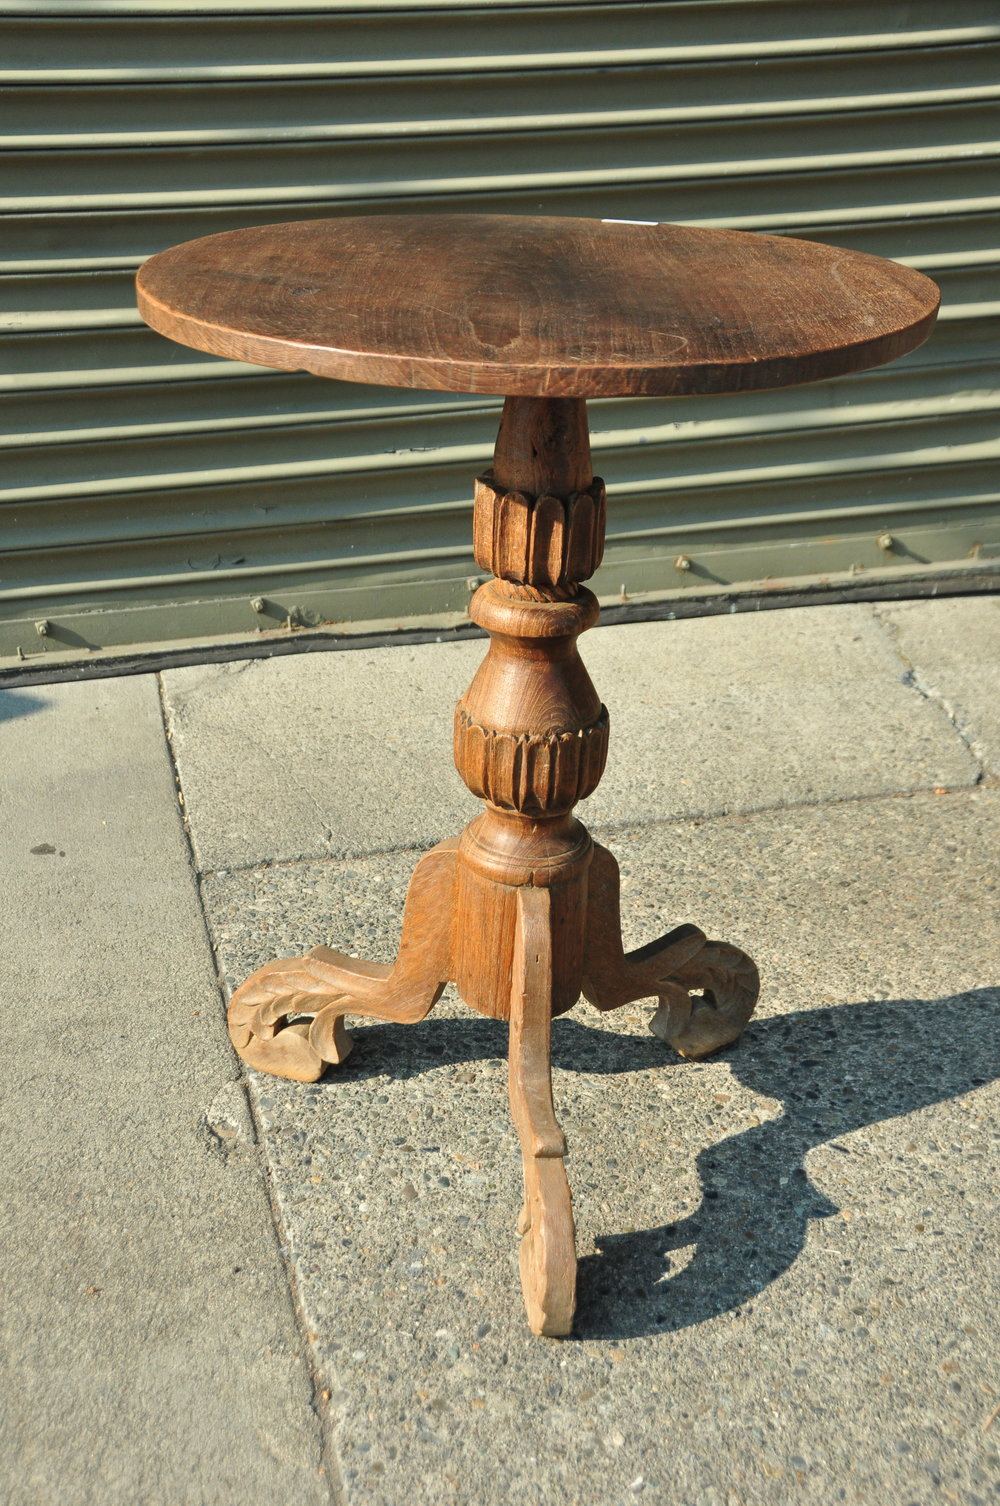 Small Javanese Side Table   Sizes vary   Price:   $145-$350